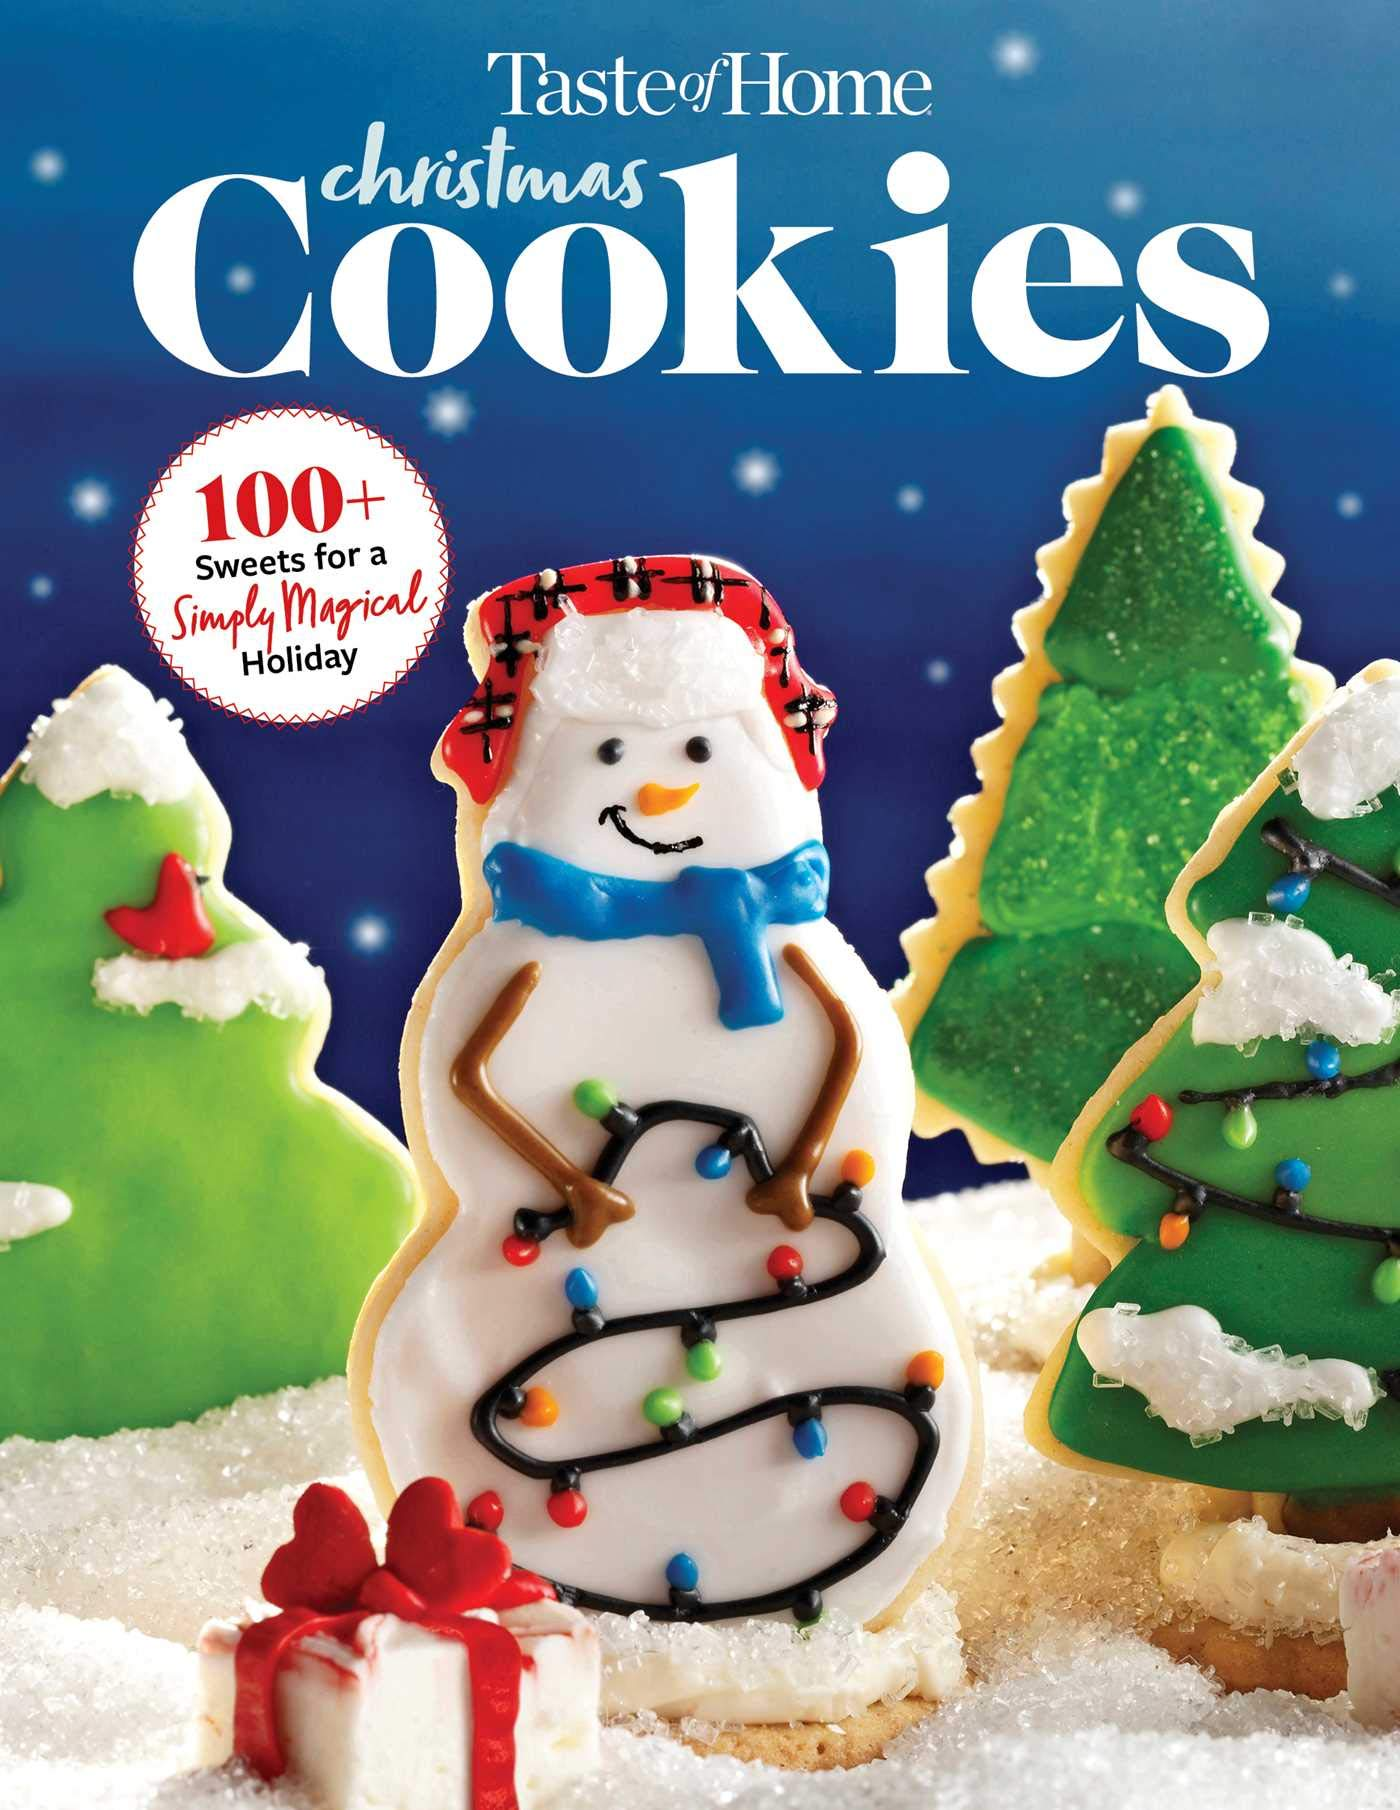 Taste Of Home Christmas 2020 Taste of Home Christmas Cookies Mini Binder: 100+ Sweets for a